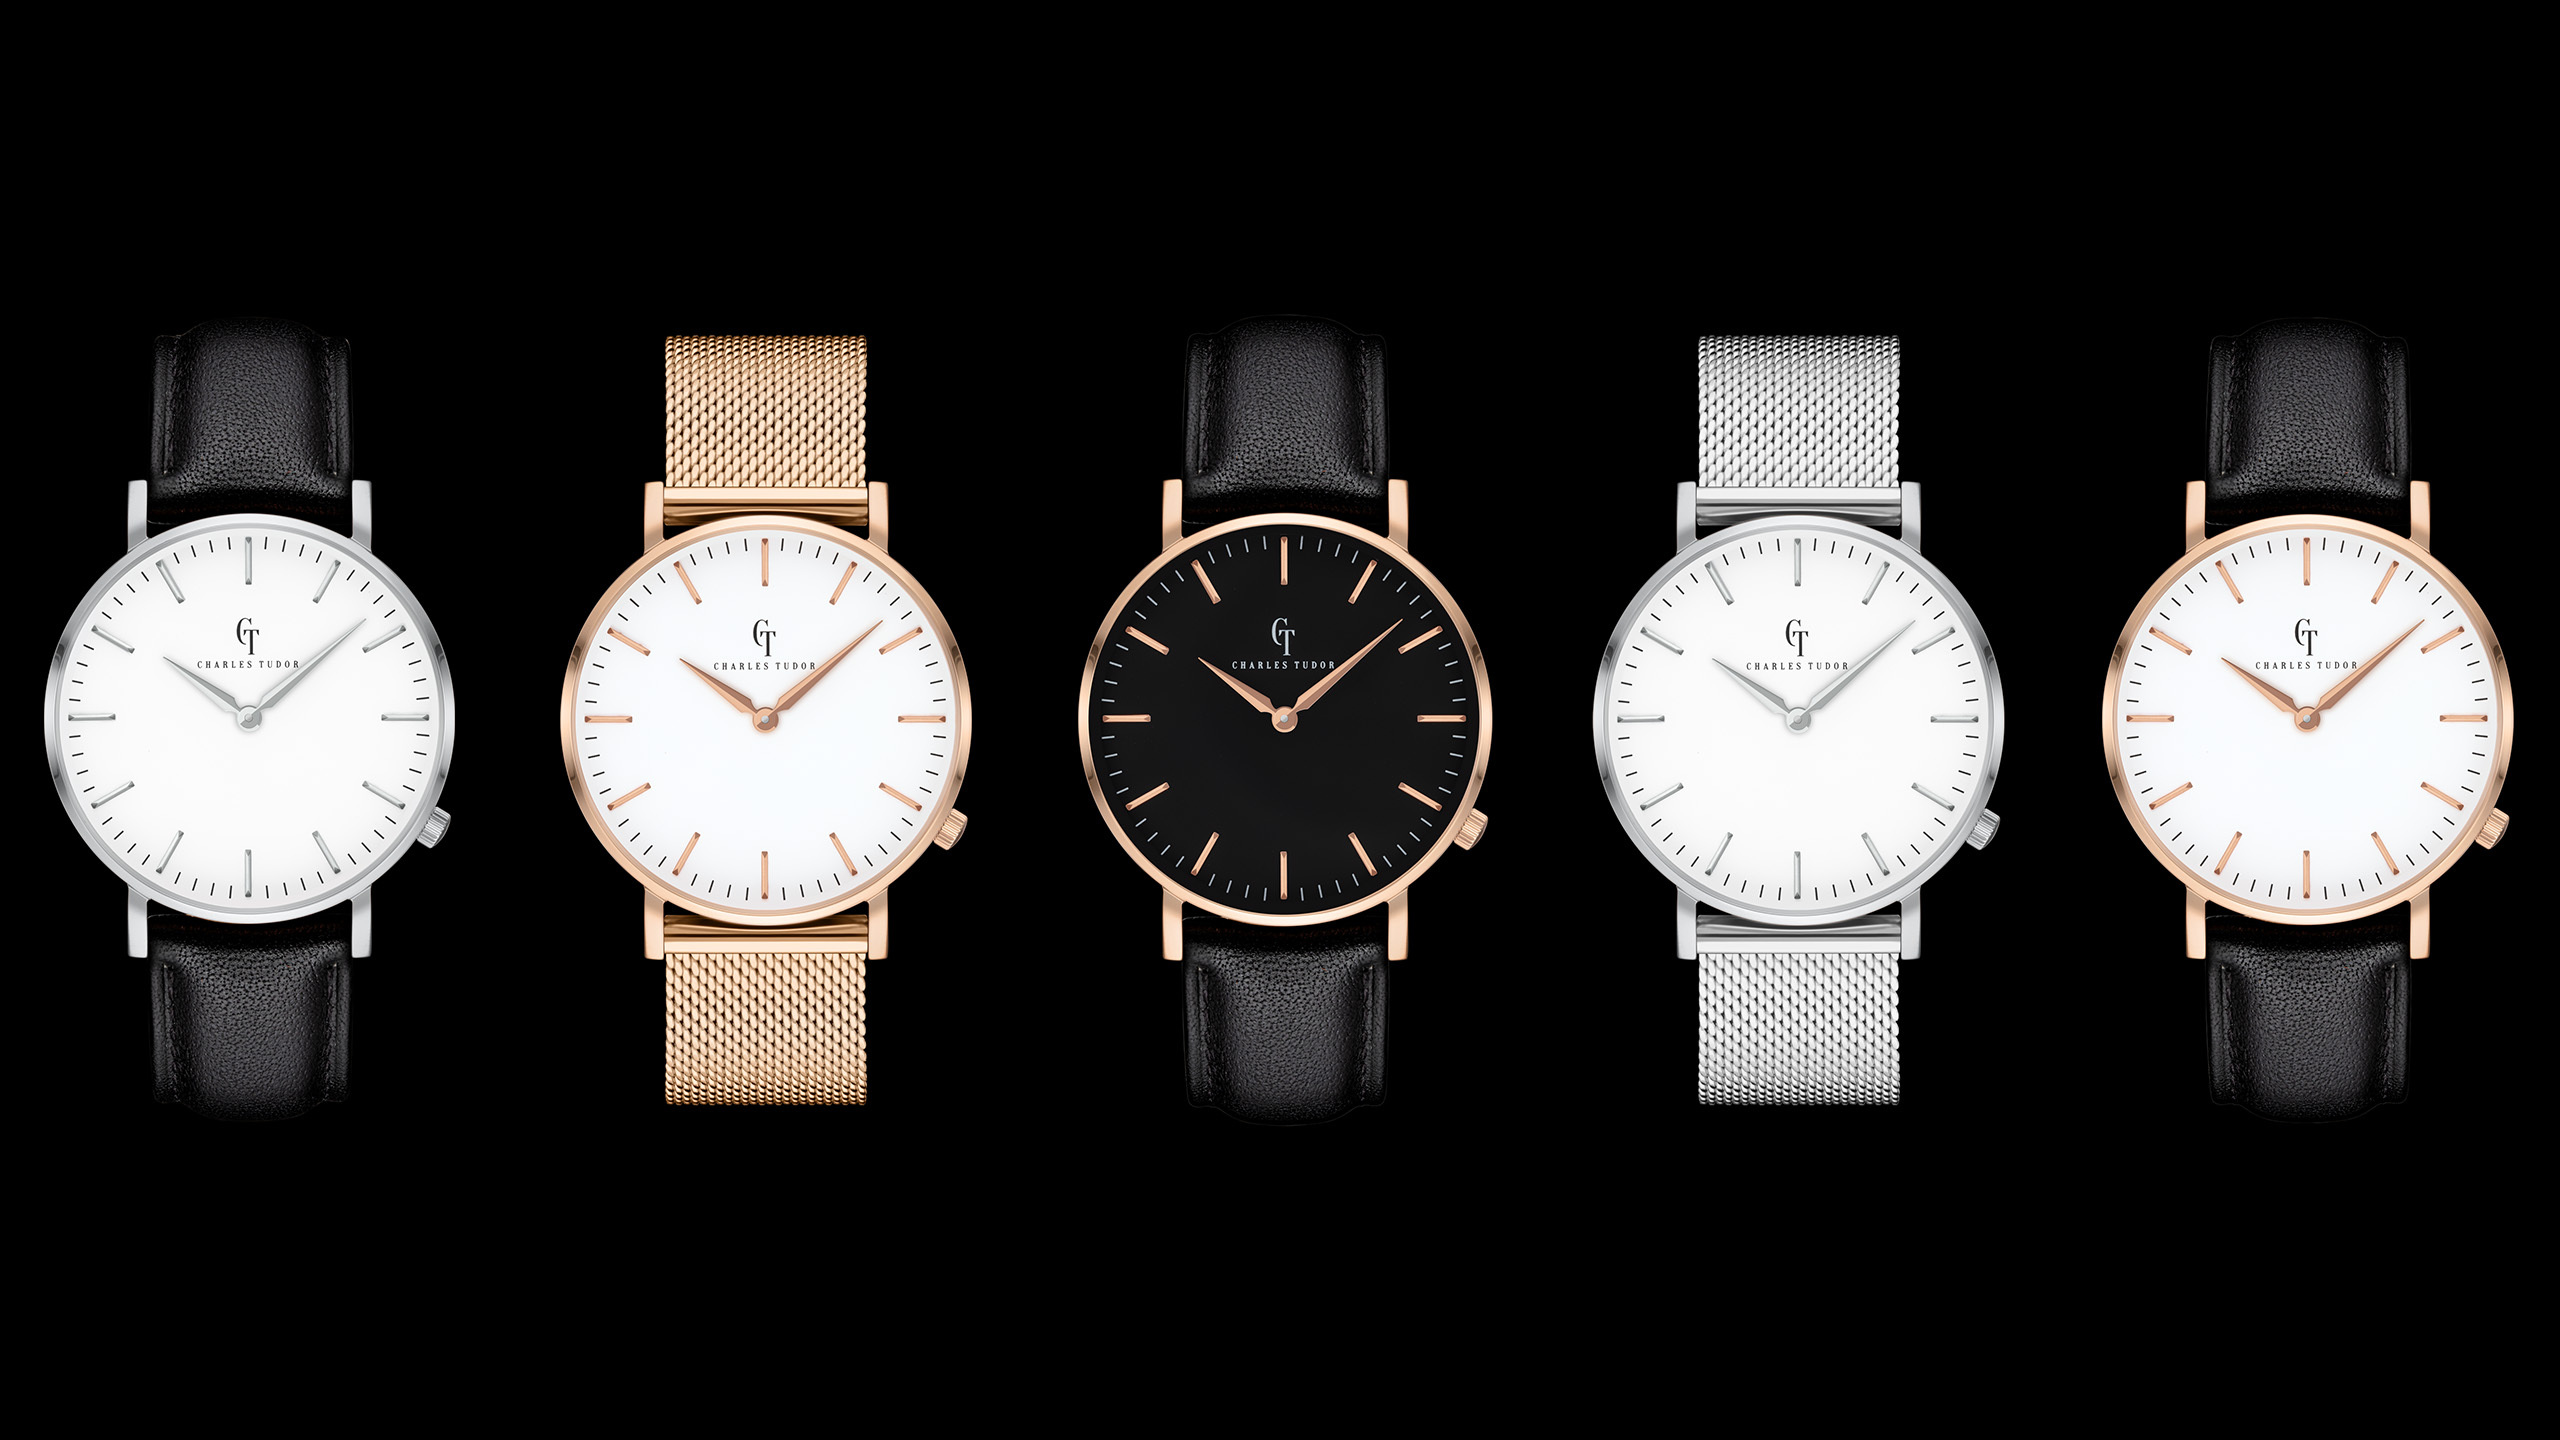 Classic Watch - composed product photography